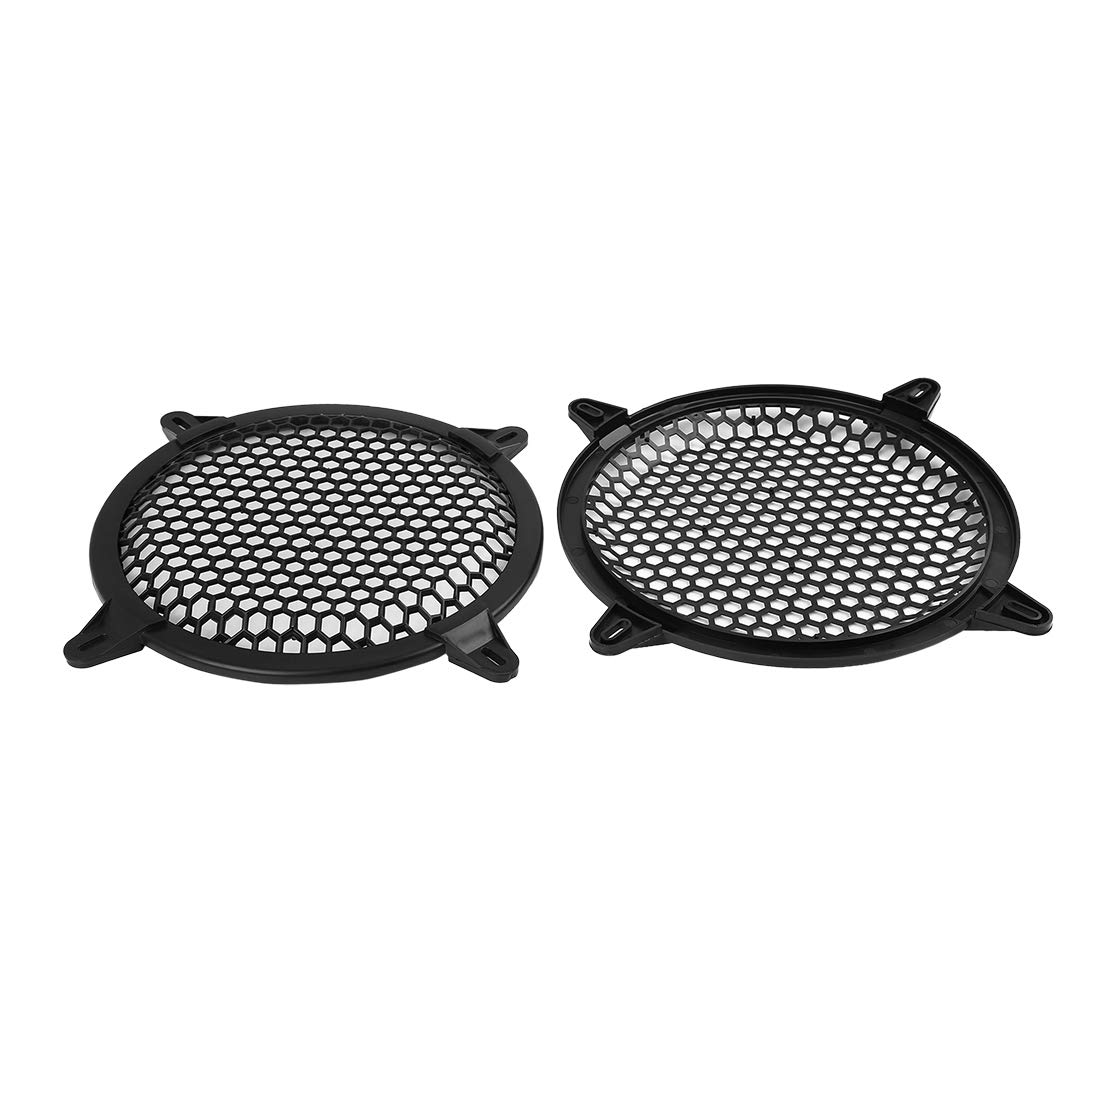 X AUTOHAUX Grill Cover 12 Mesh/ Protector Car Speaker Cover Woofer Subwoofer Grill